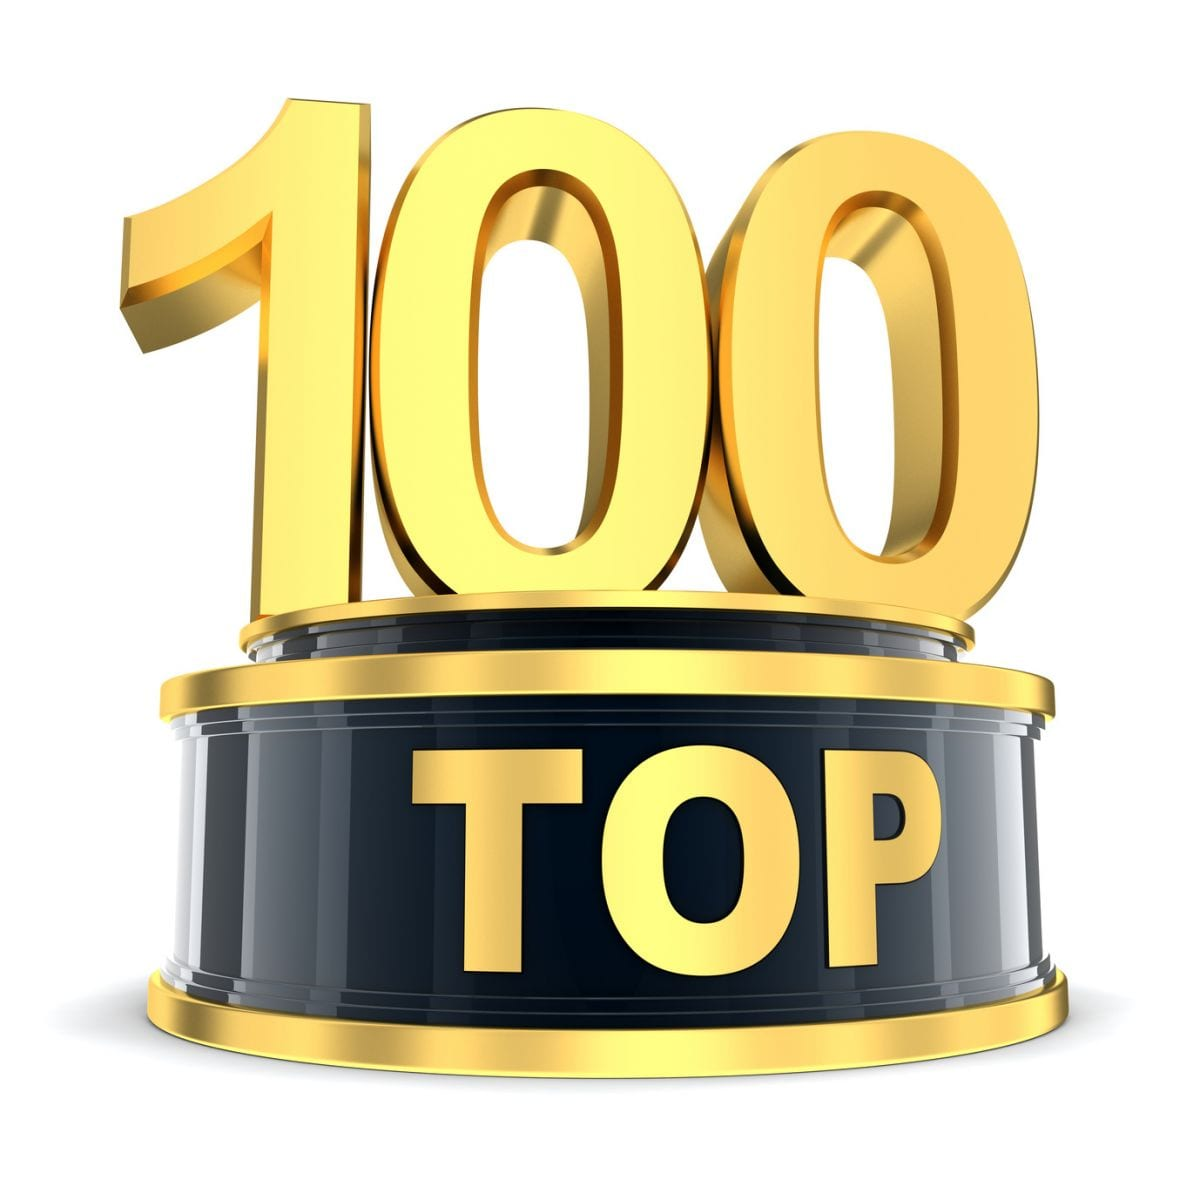 Top 100 Accounting Firms 2013